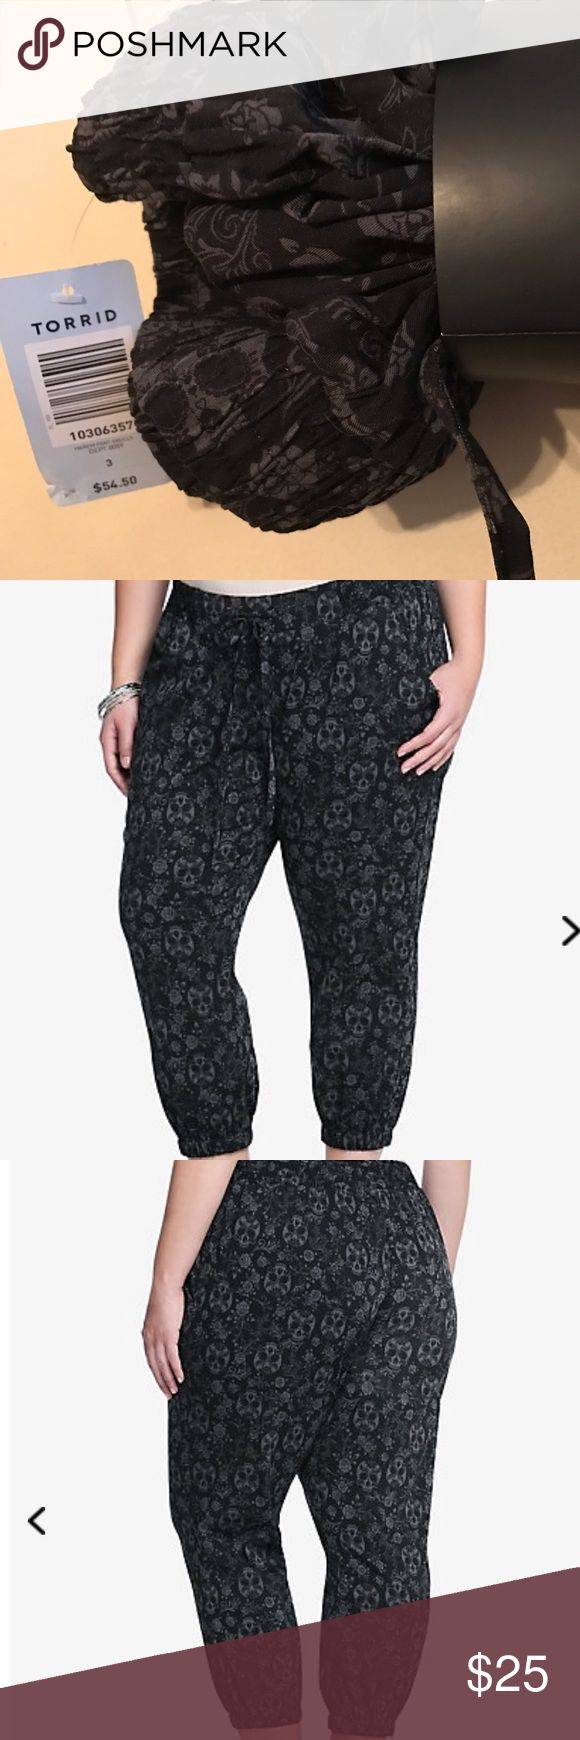 NWT Torrid Harem Pants with Skulls Size 3 Torrid brand Harem pants with Skulls design. Size 3, bought and they are too large, lost original receipt and could not return. Paid $58, will sacrifice price to sell. We are a pet friendly home. Smoke free home torrid Pants Ankle & Cropped